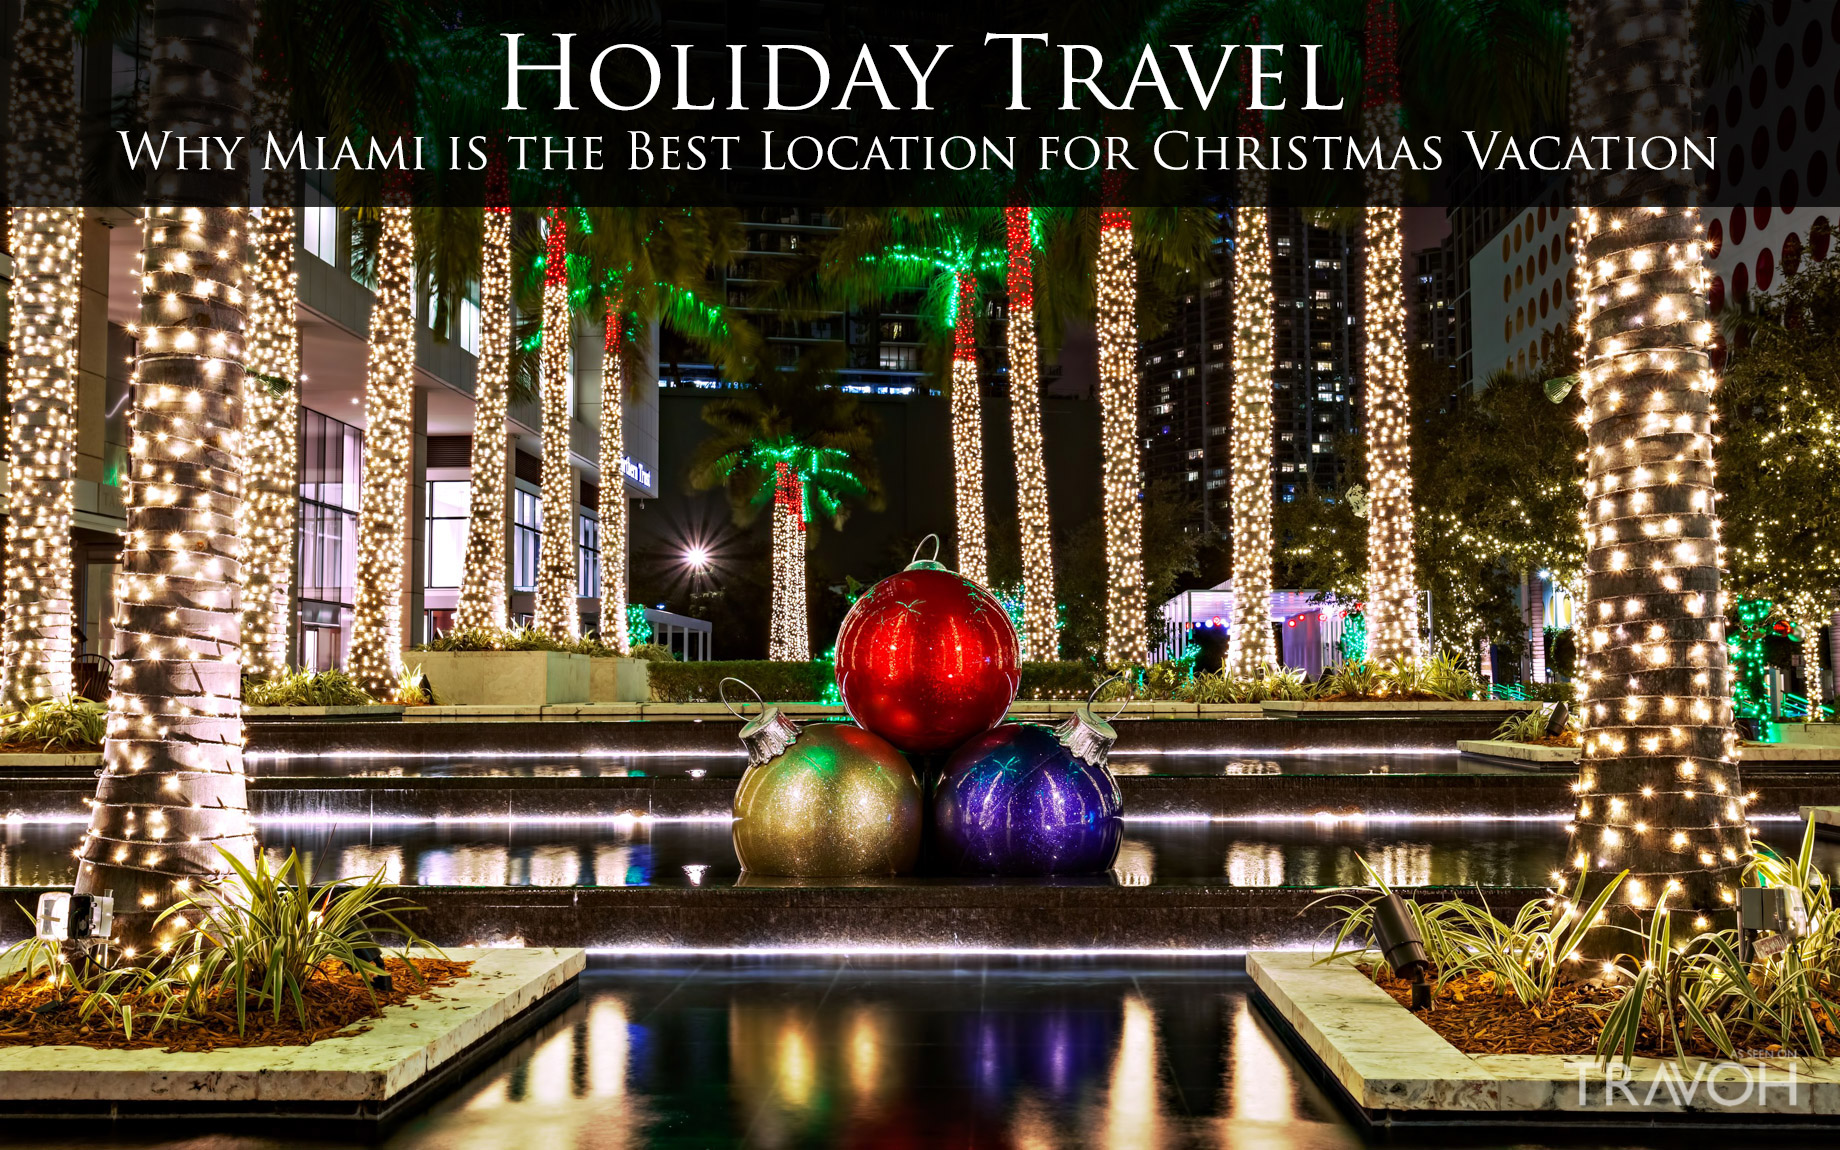 Holiday Travel - Why Miami is the Best Location for Christmas Vacation